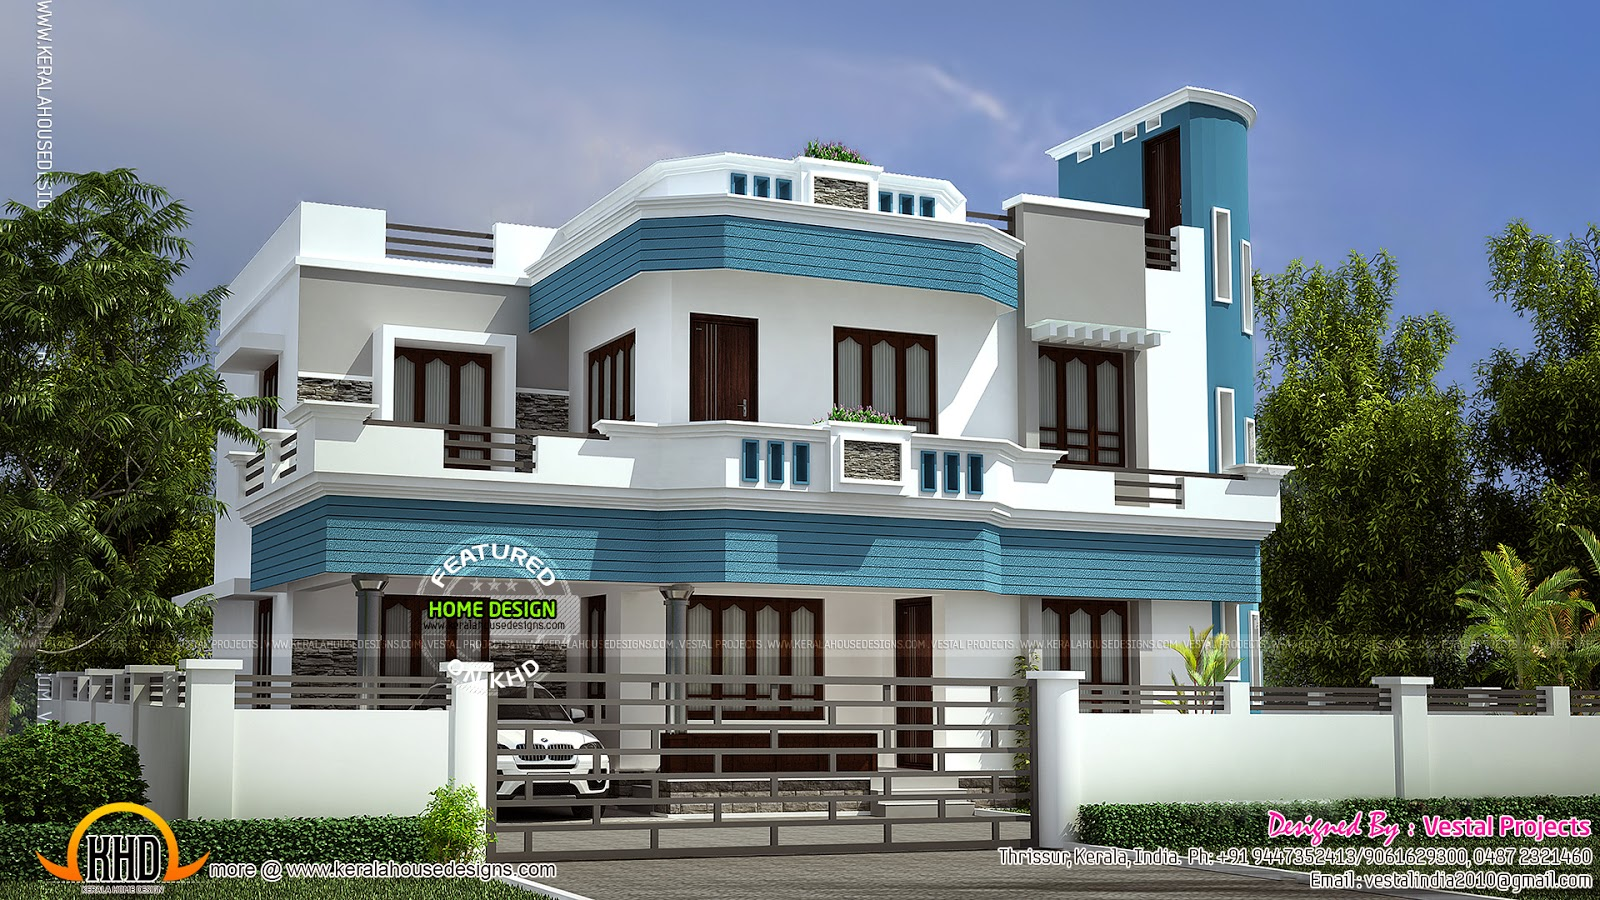 Awesome house by vestal projects kerala home design and for Home design images